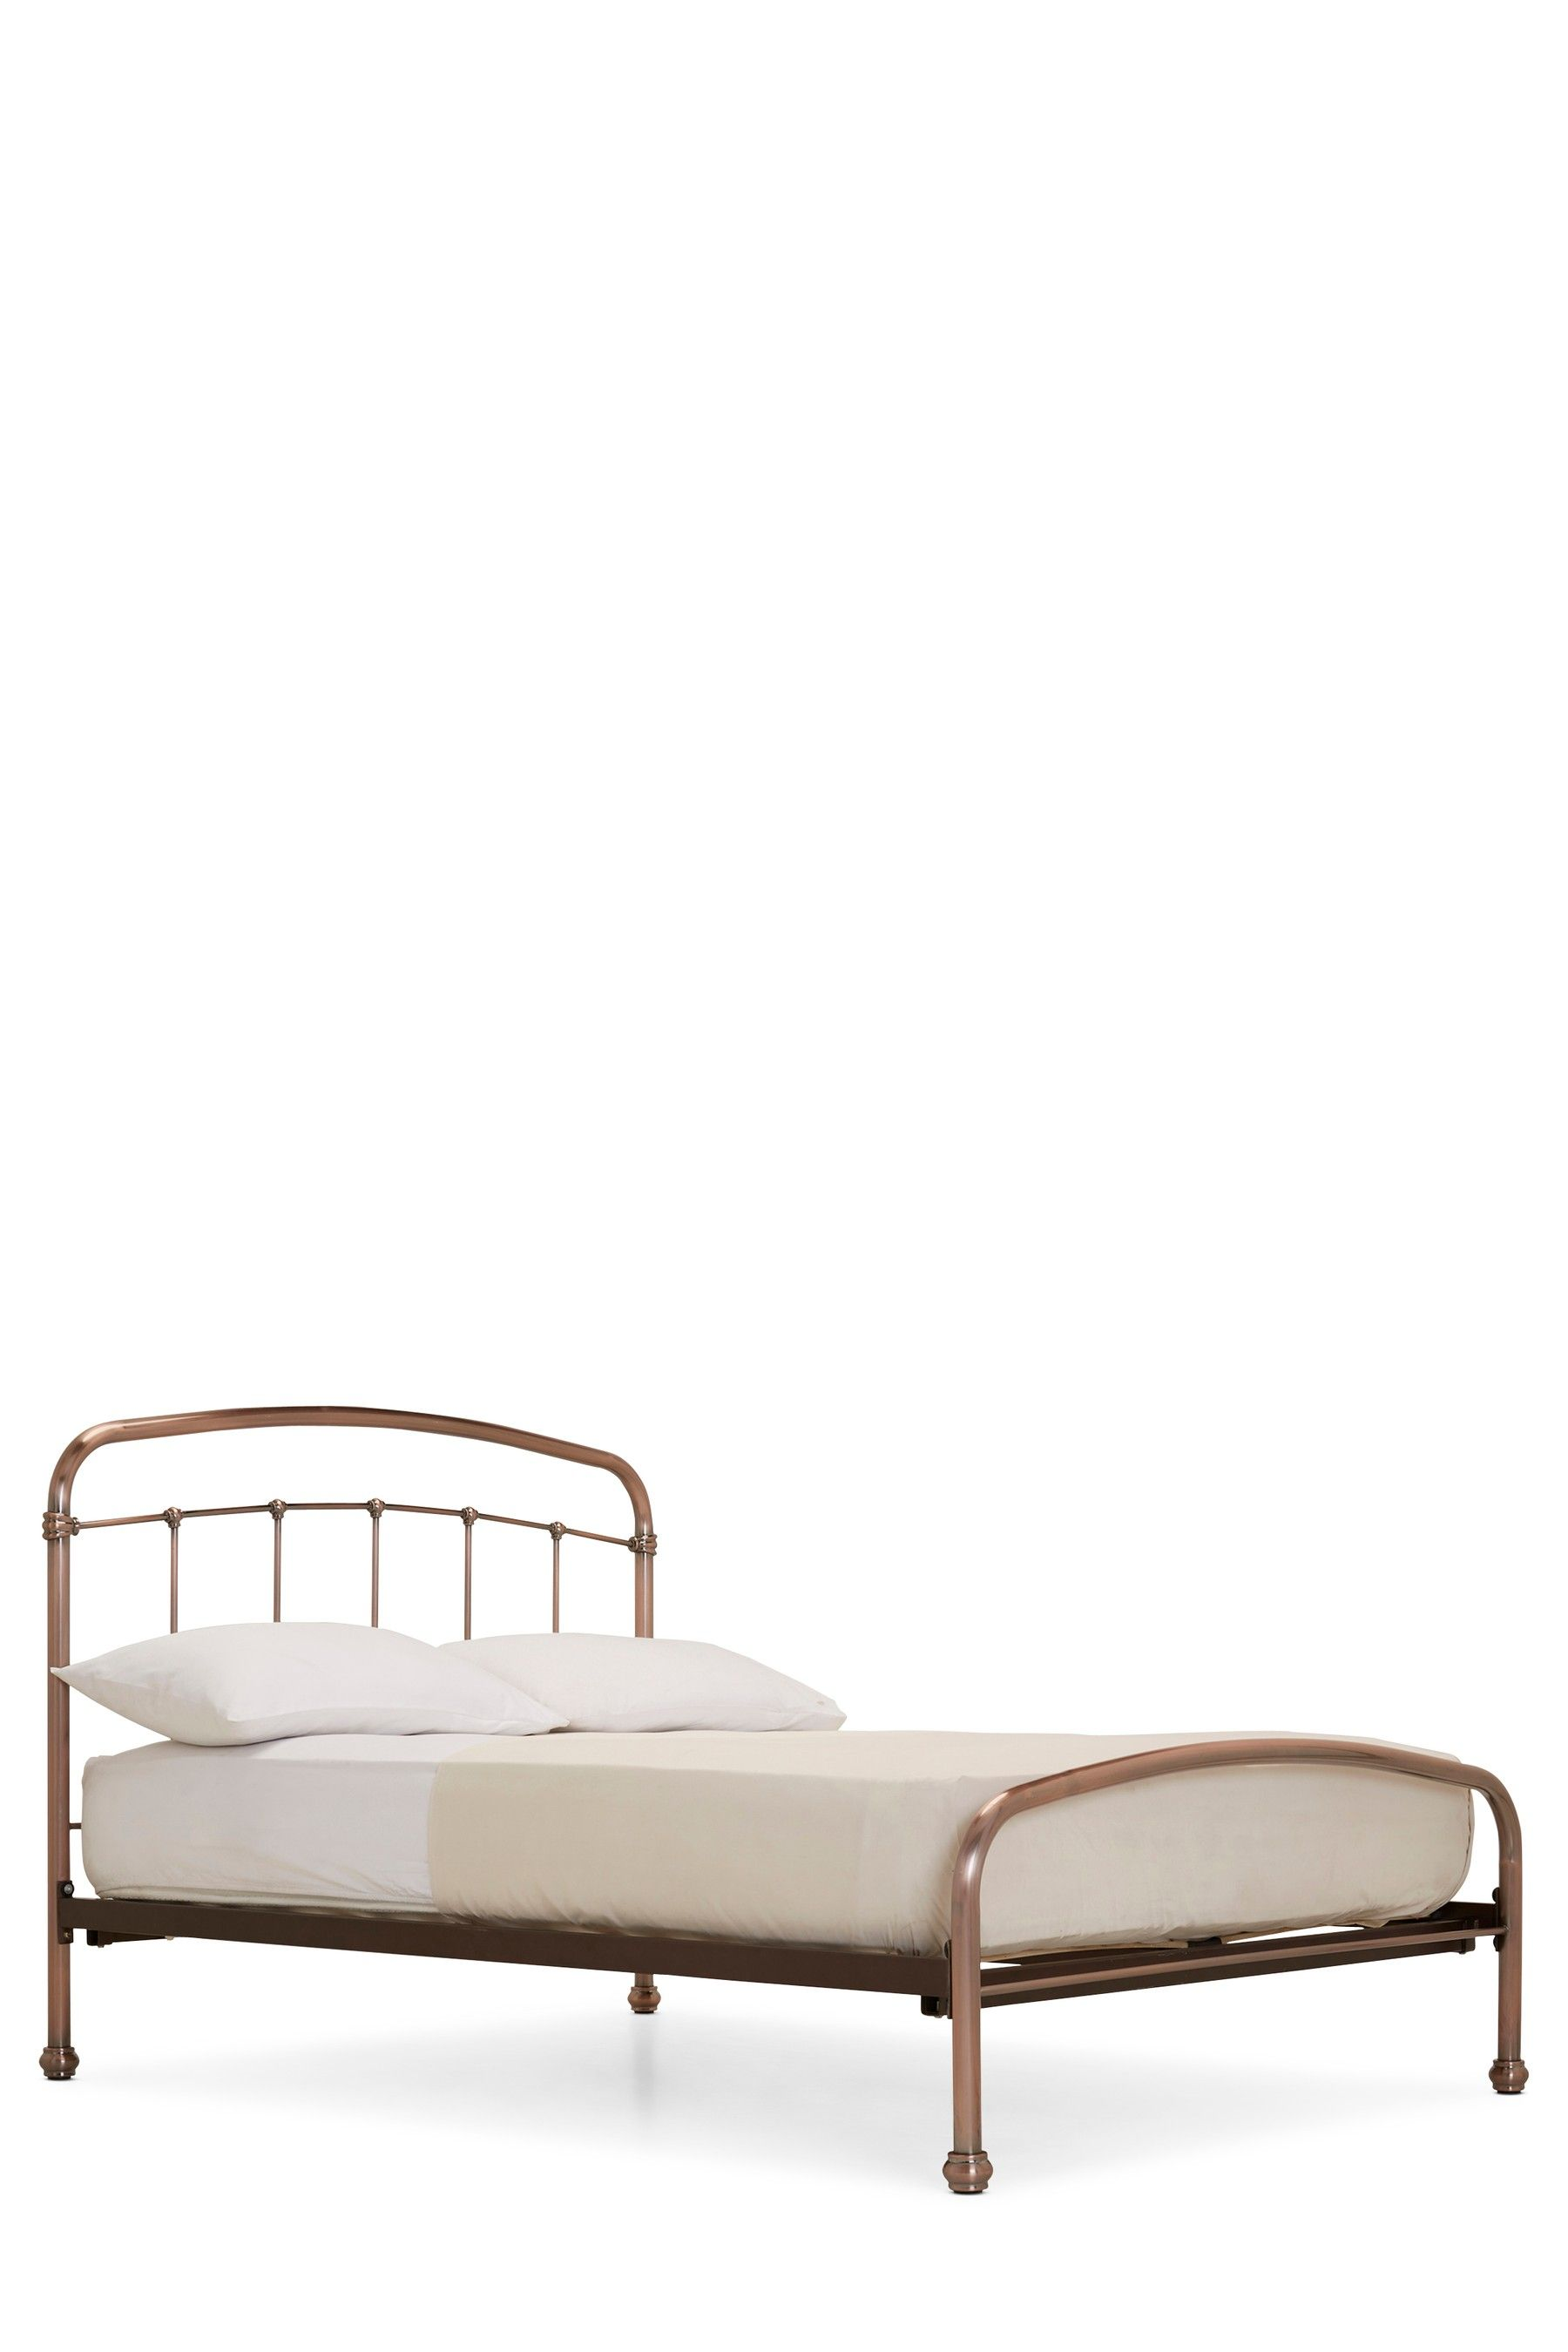 Buy Shoreditch No Footend Bed from the Next UK online shop